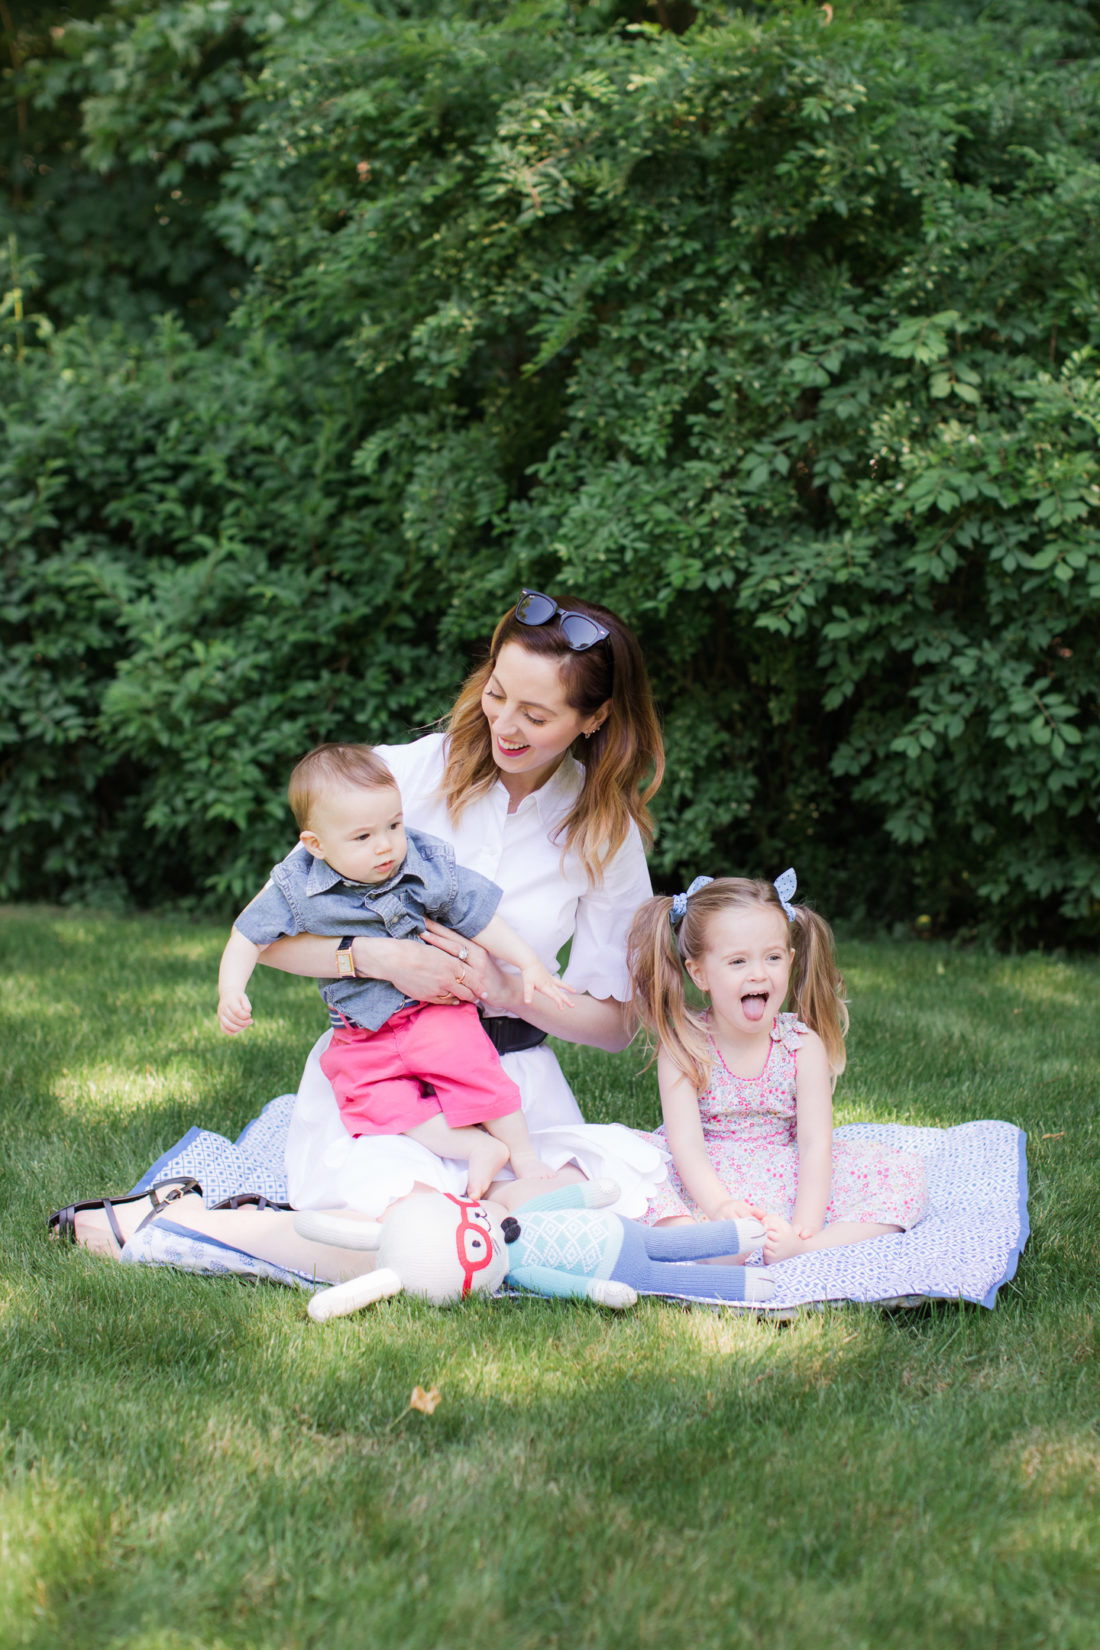 Eva Amurri Martino of lifestyle and motherhood blog Happily Eva After relaxes on a picnic blanket with her two children Marlowe and Major